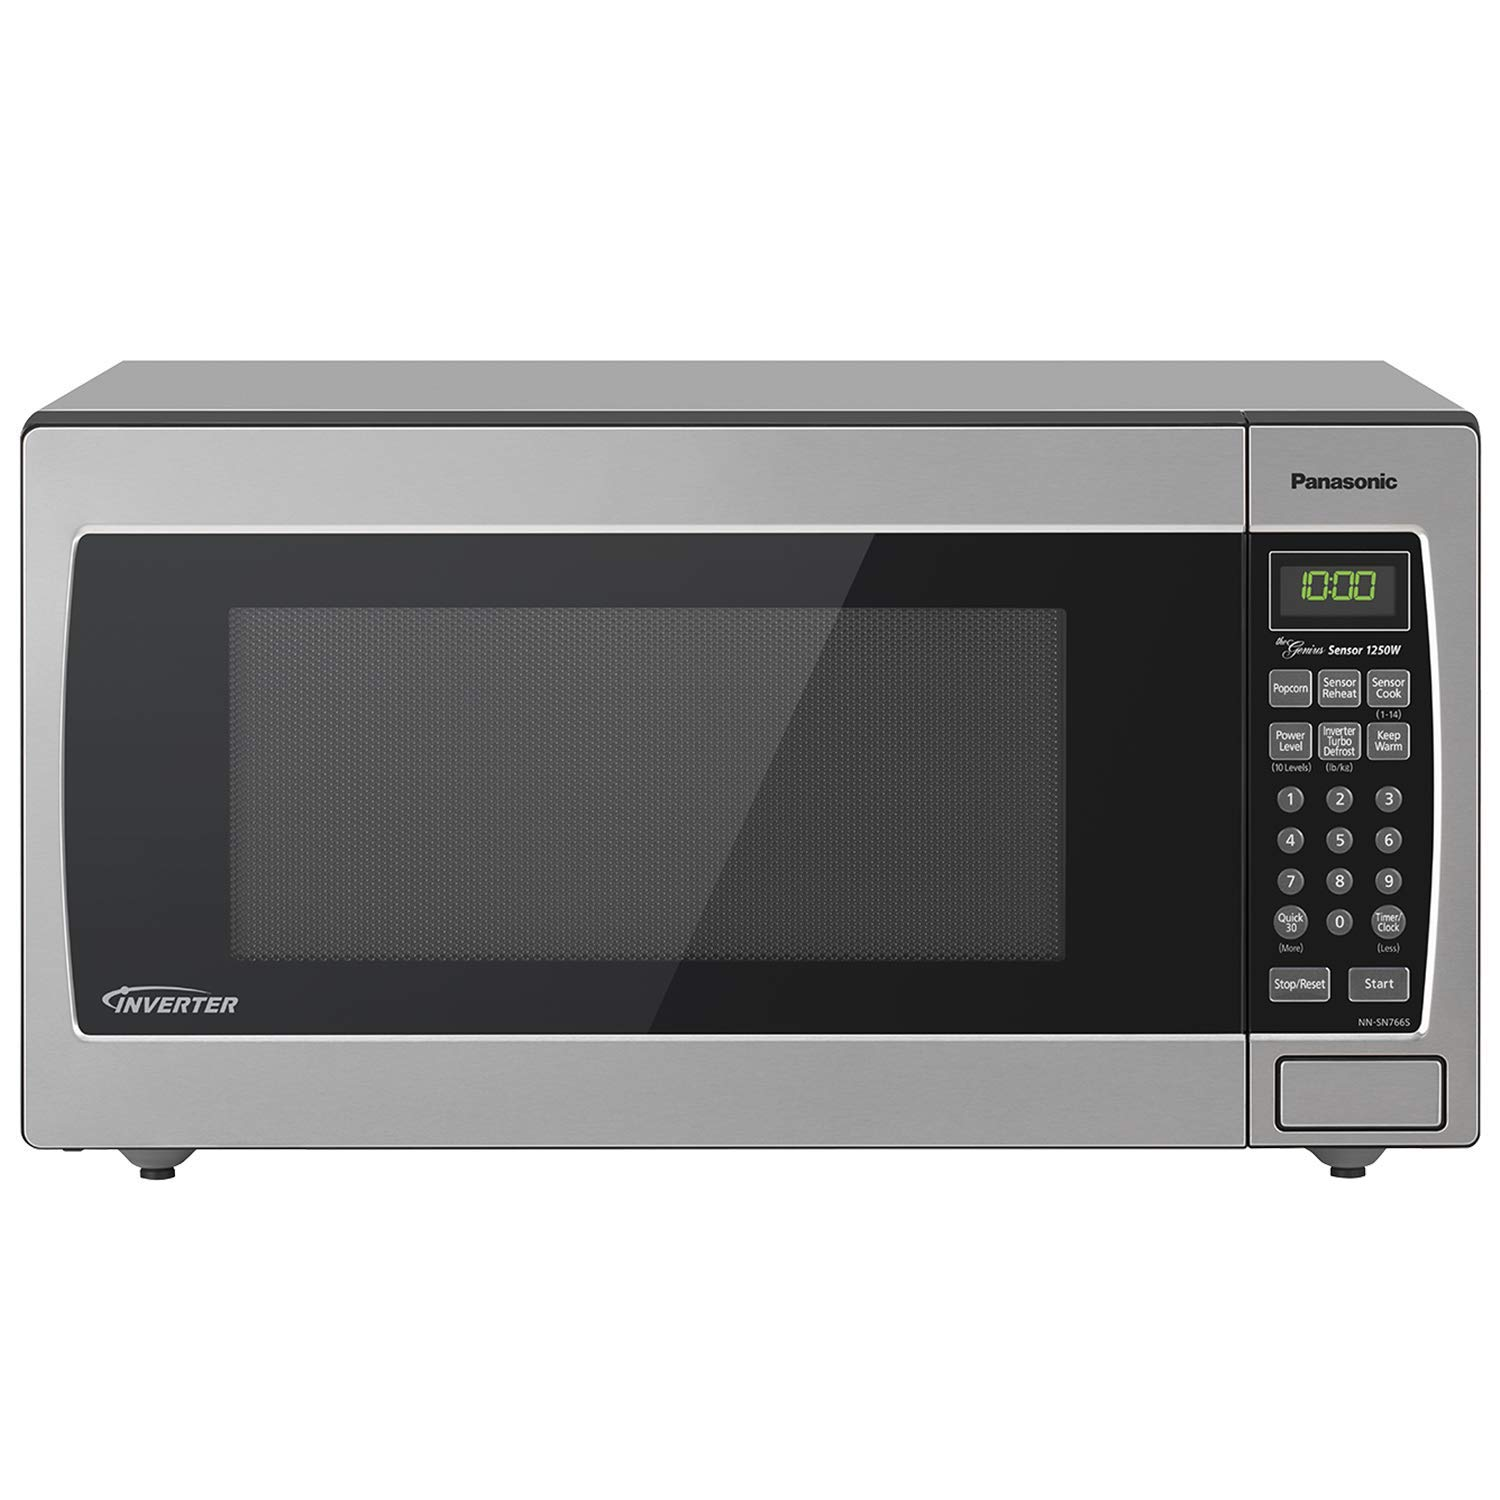 Panasonic Microwave Oven NN-SN766S Stainless Steel Countertop/Built-In with Inverter Technology and Genius Sensor, 1.6 Cu. Ft, 1250W (Renewed)